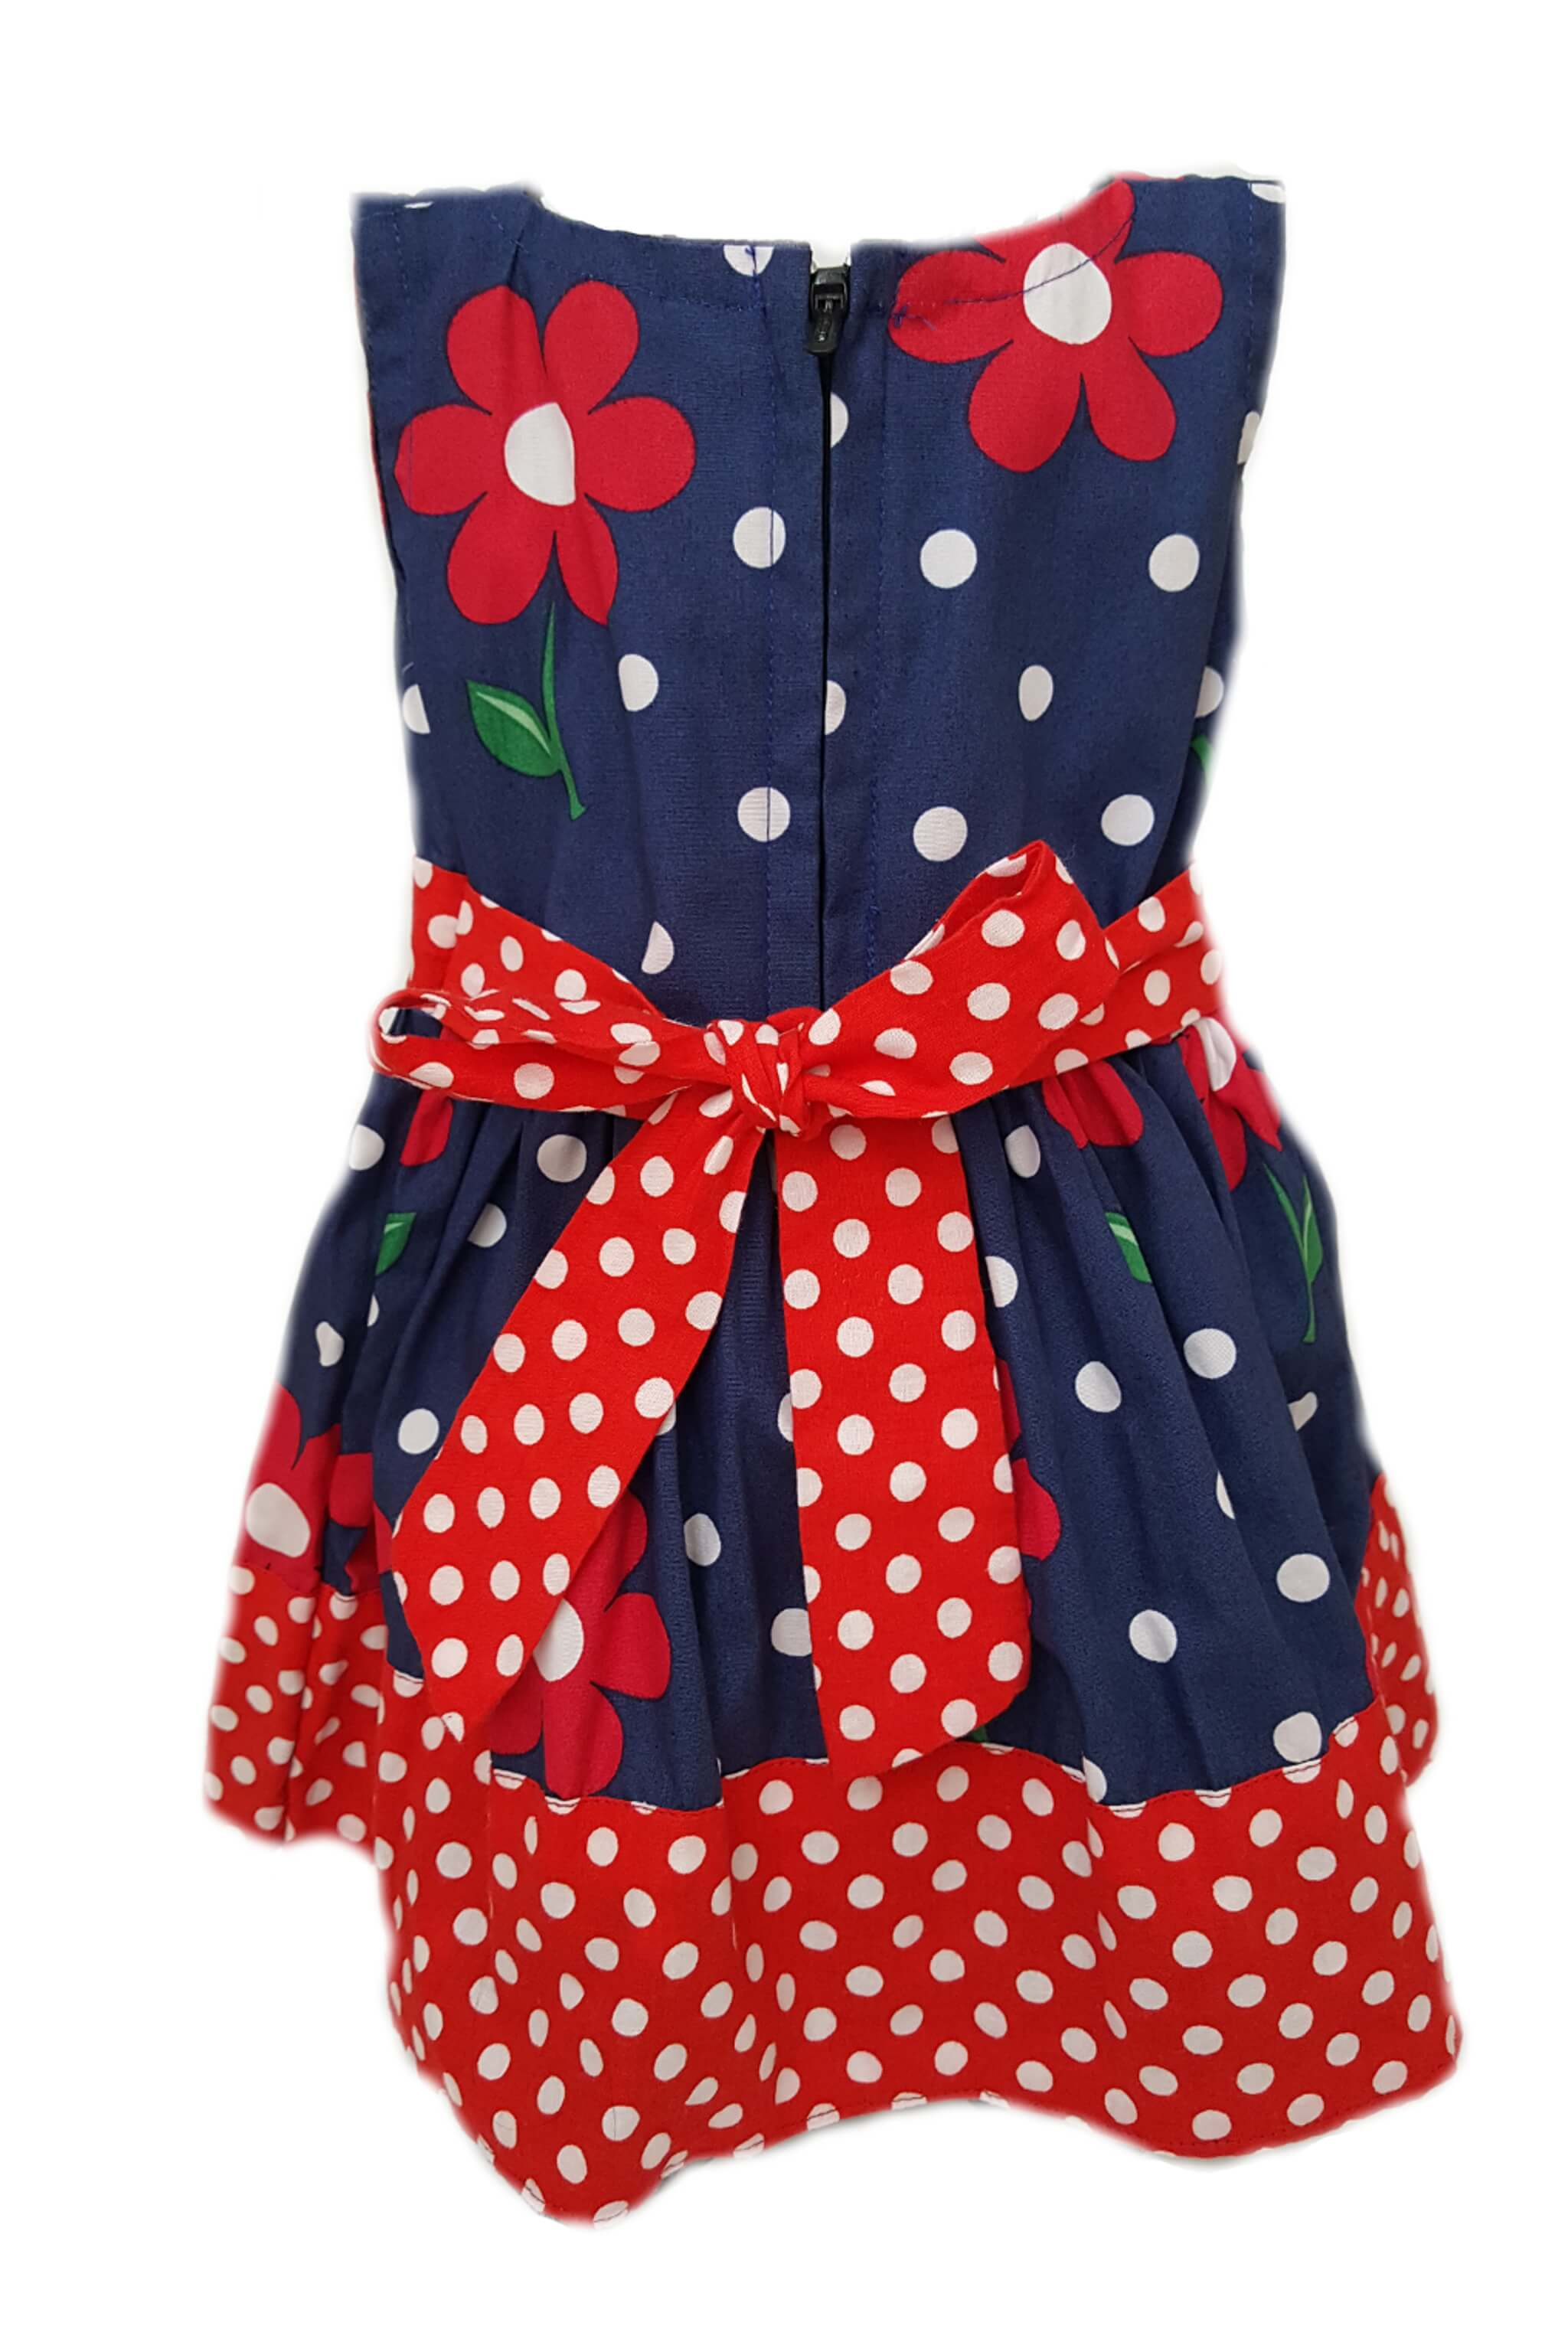 Back of navy blue with red floral print dress and red polka dot hem and sash to tie at waist for baby girls